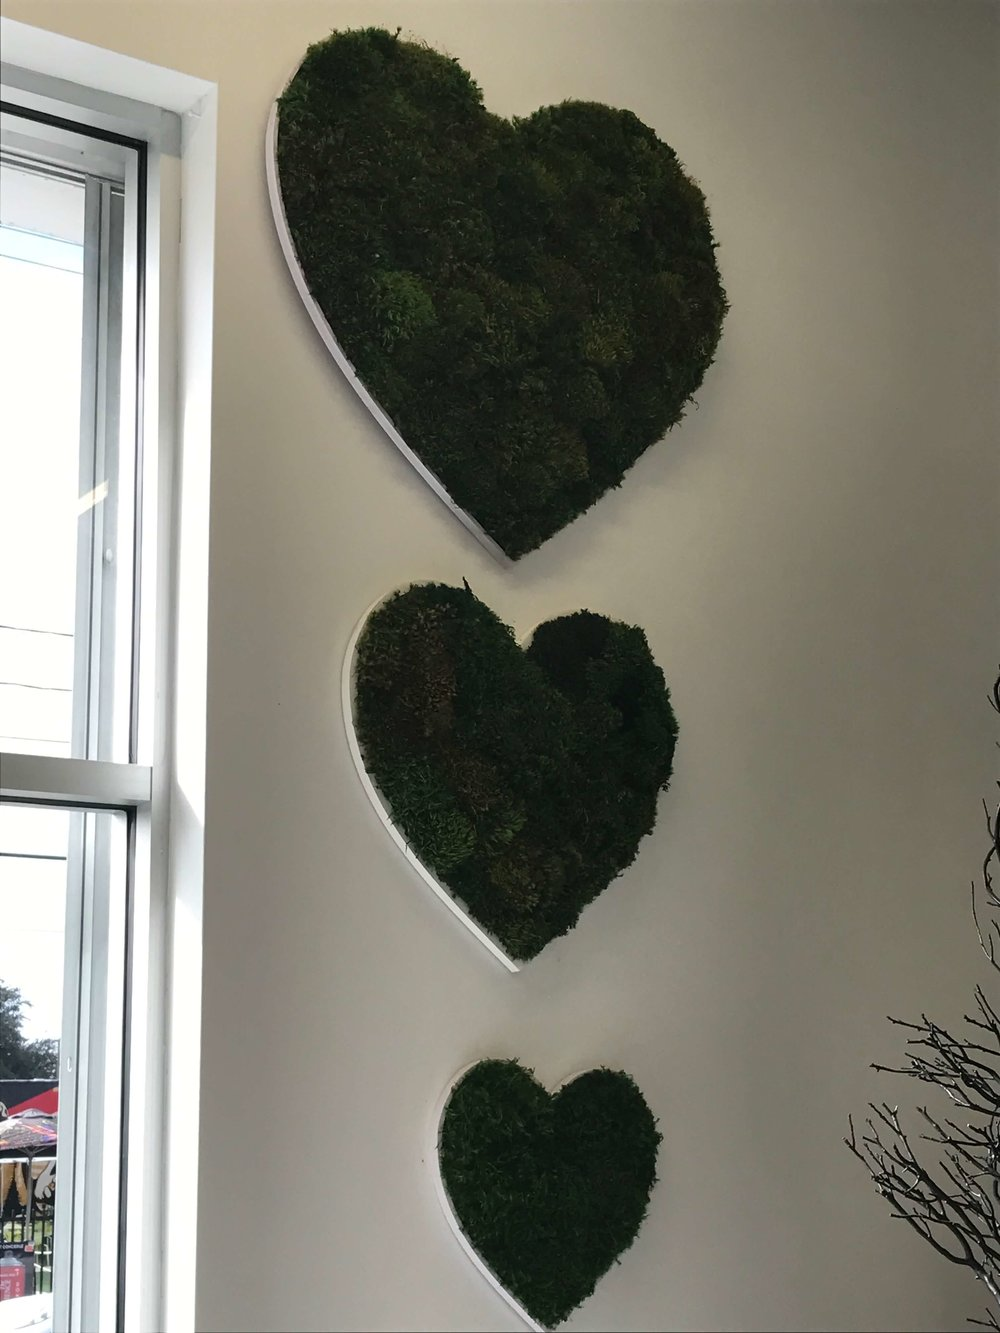 Heart Shaped Greenery at Plant the Future Shop